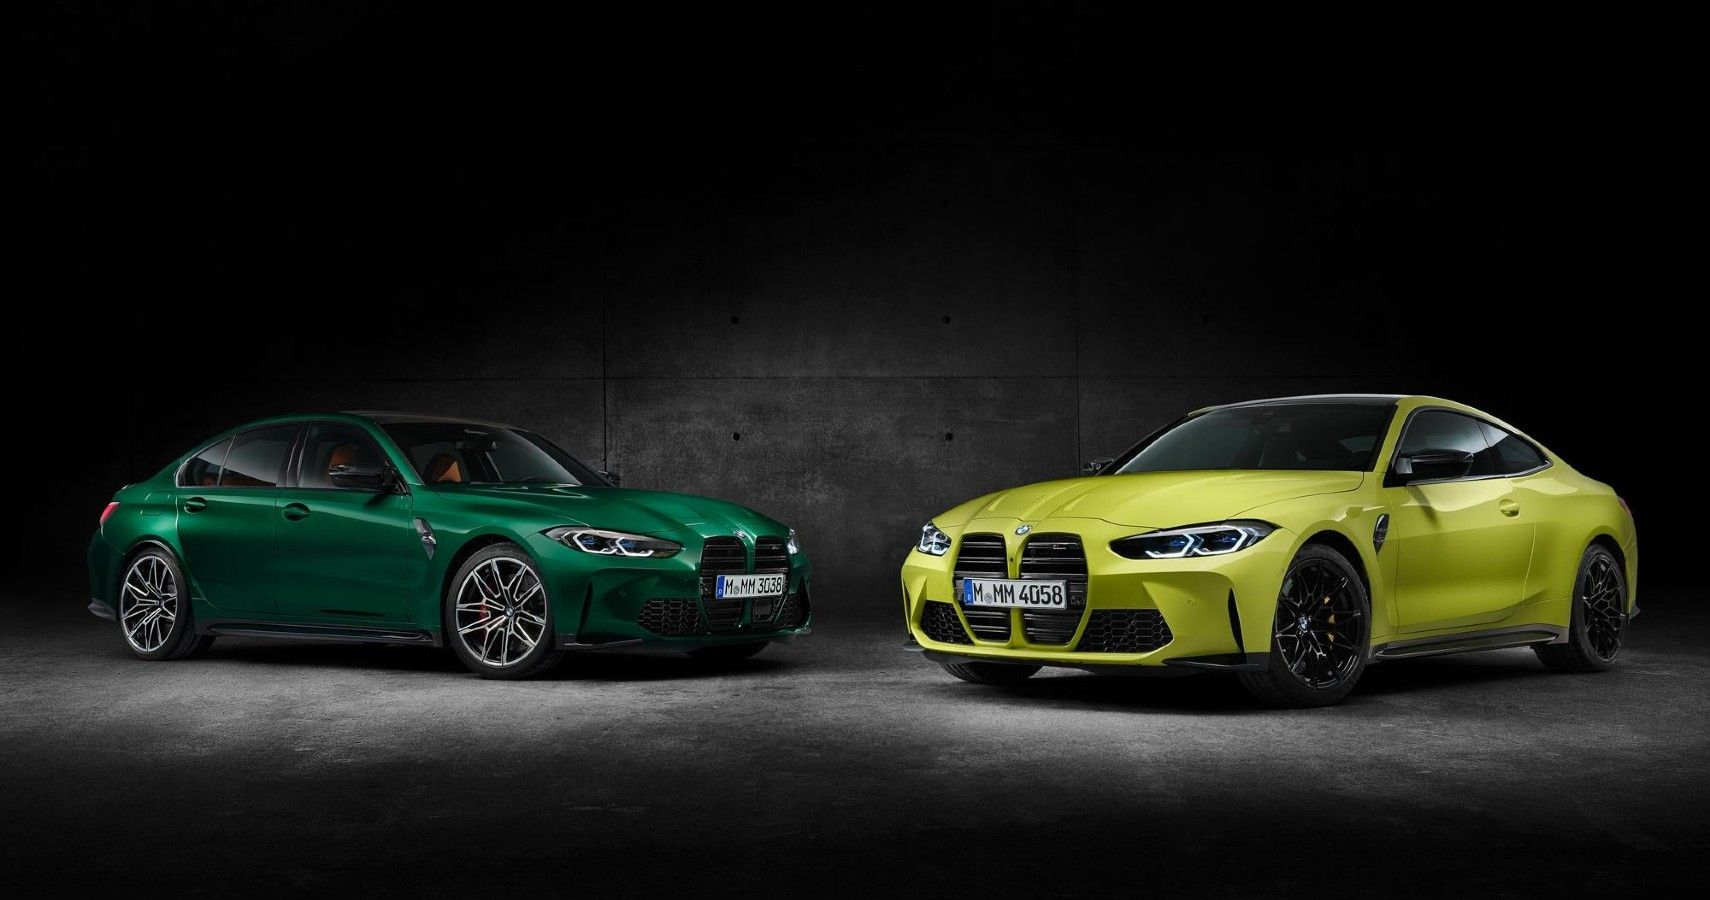 Leaked Photos Reveal BMW M3 And M4 In The Flesh | HotCars